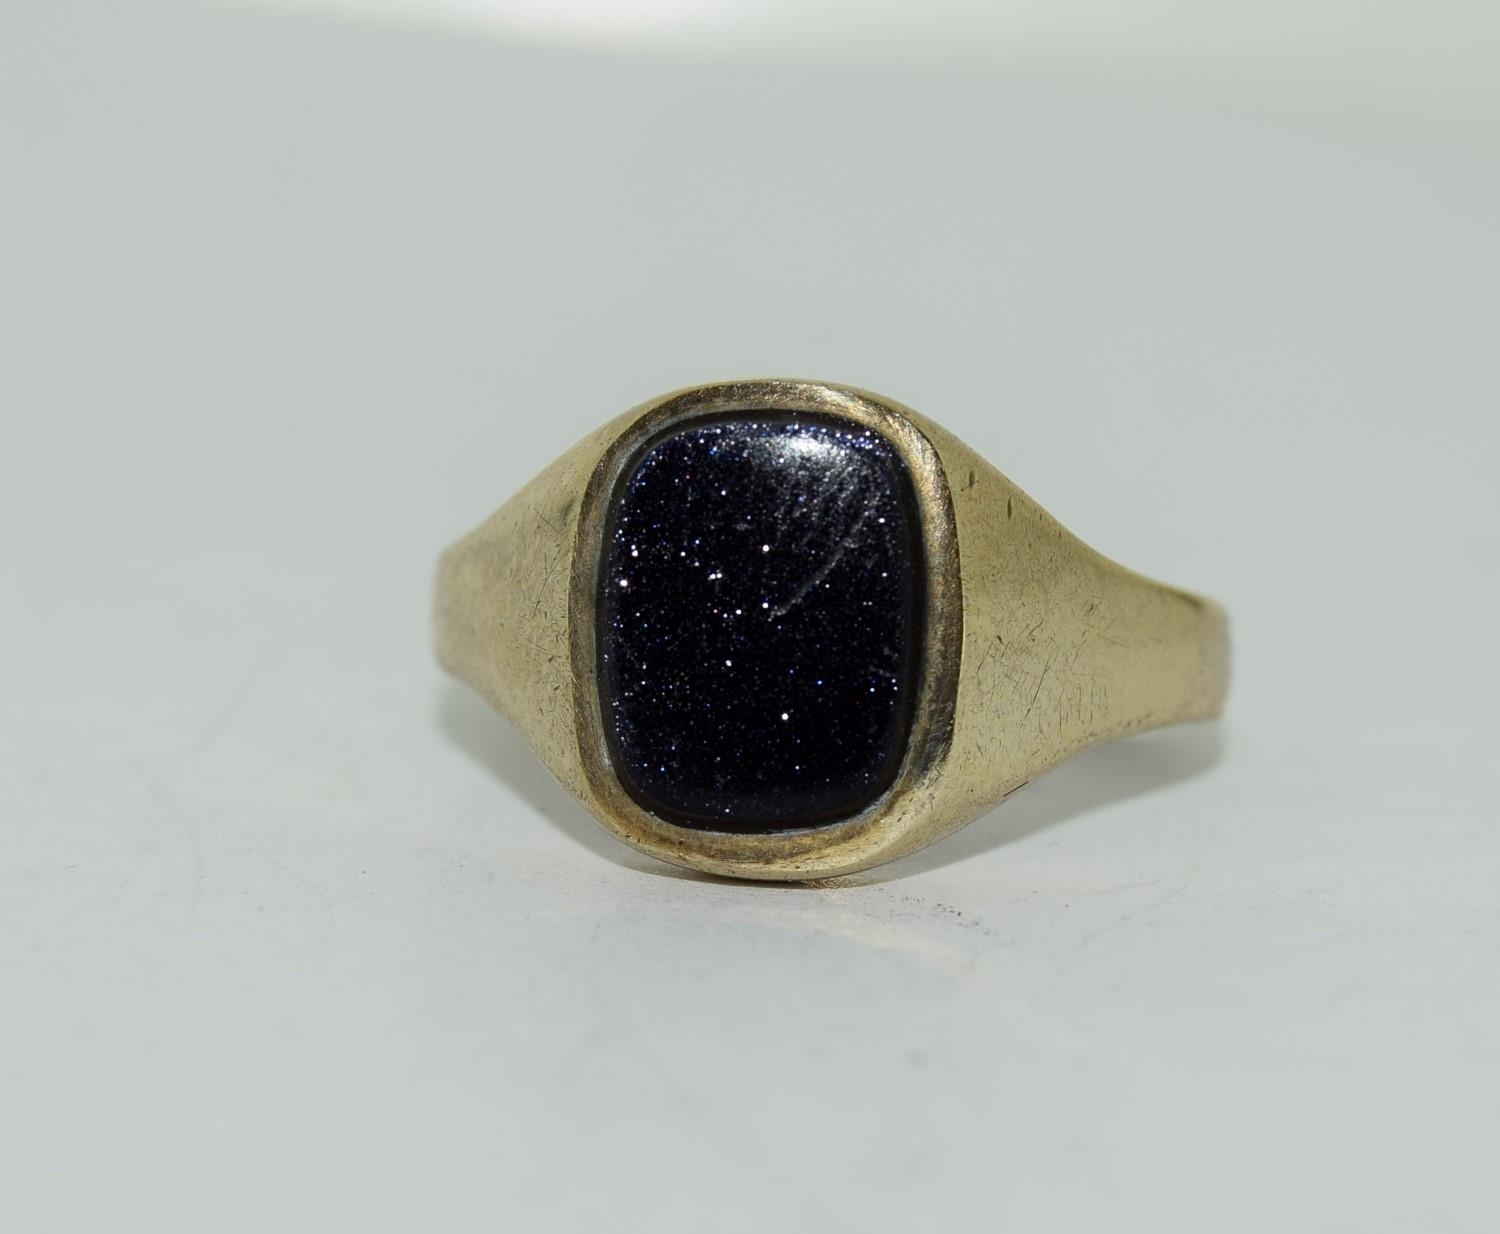 9ct gold gents sygnet ring set with unpolished amethyst centre stone size Q